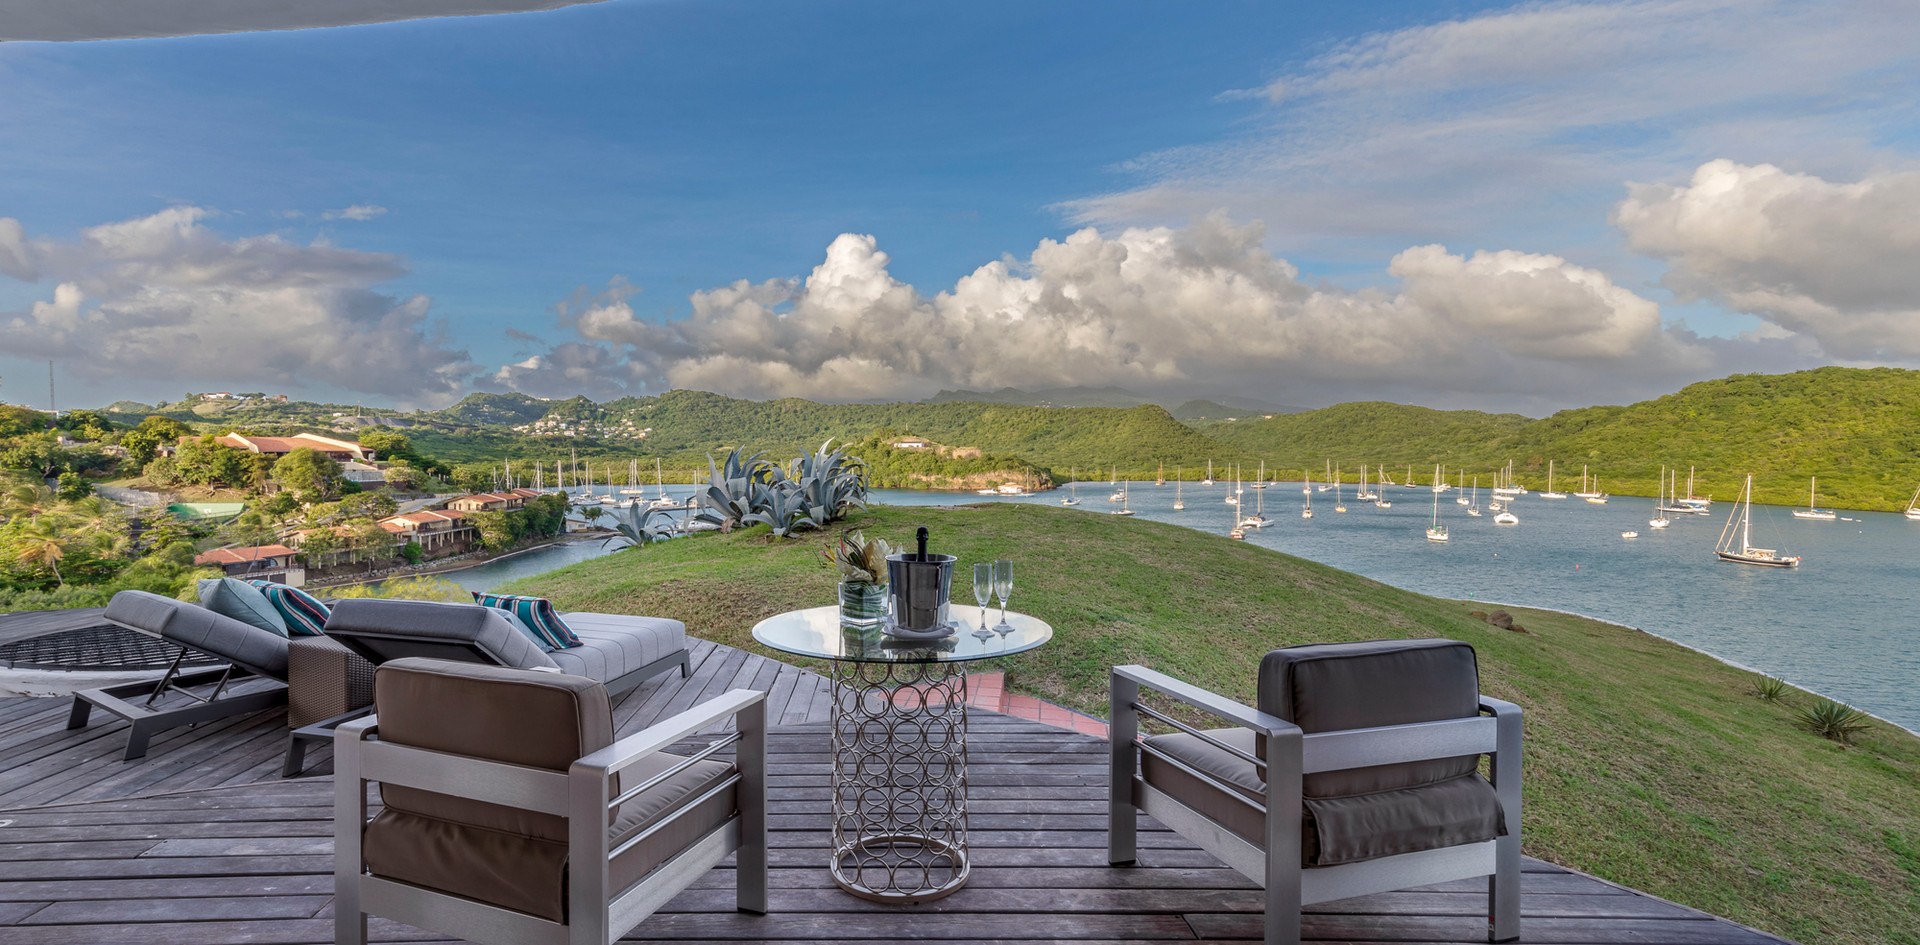 A private deck from a suite at the top of the house